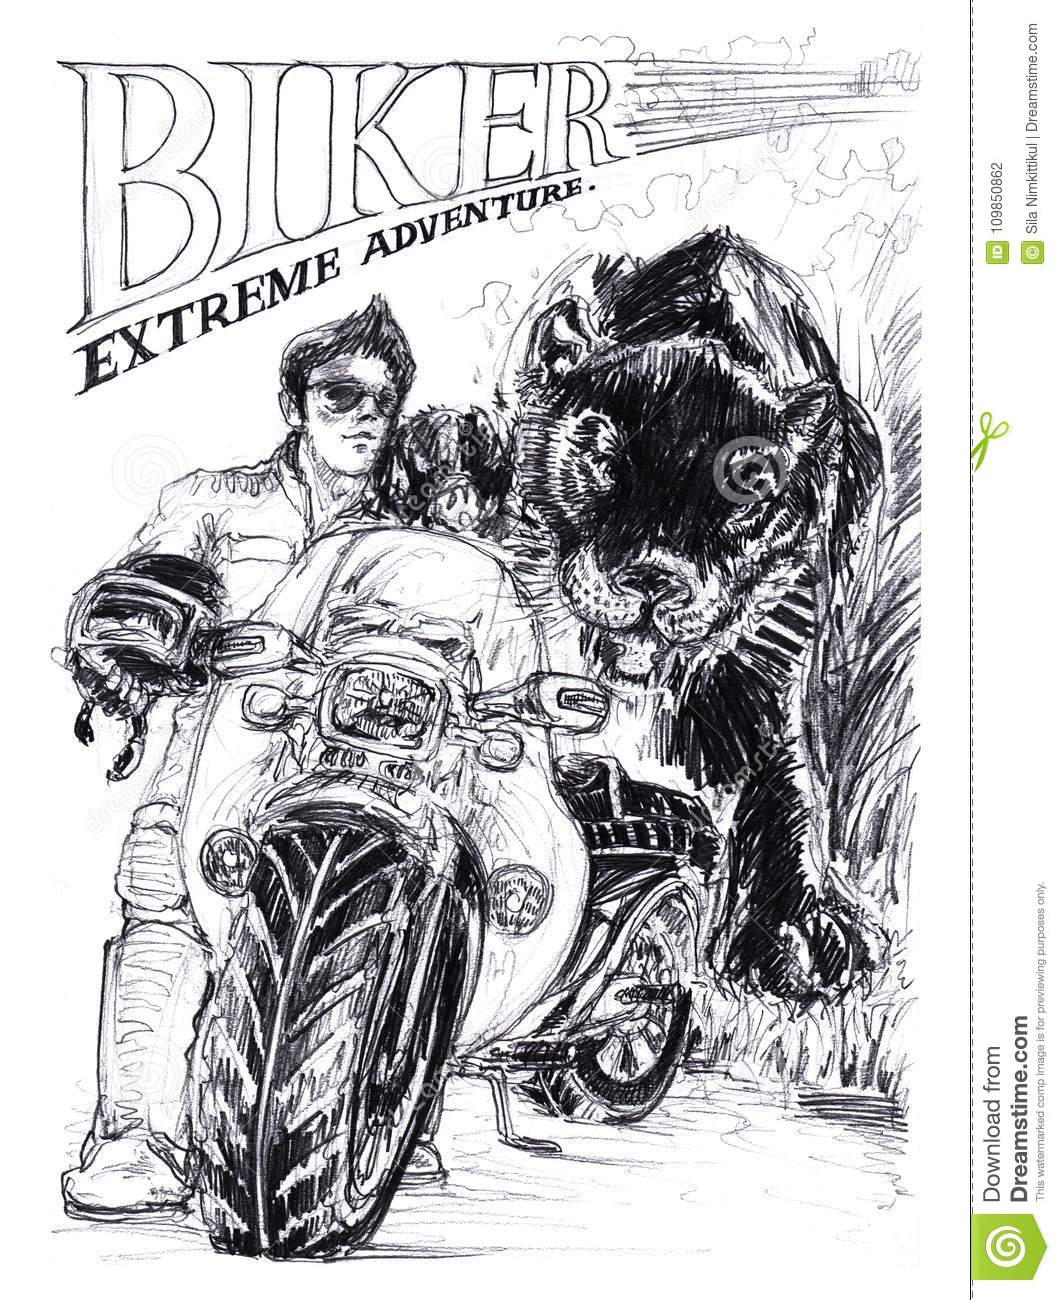 Biker action smart with big bike and panther or black tigeris background acting pencil has biker stroke and extreme adventure word drawing speedy concept